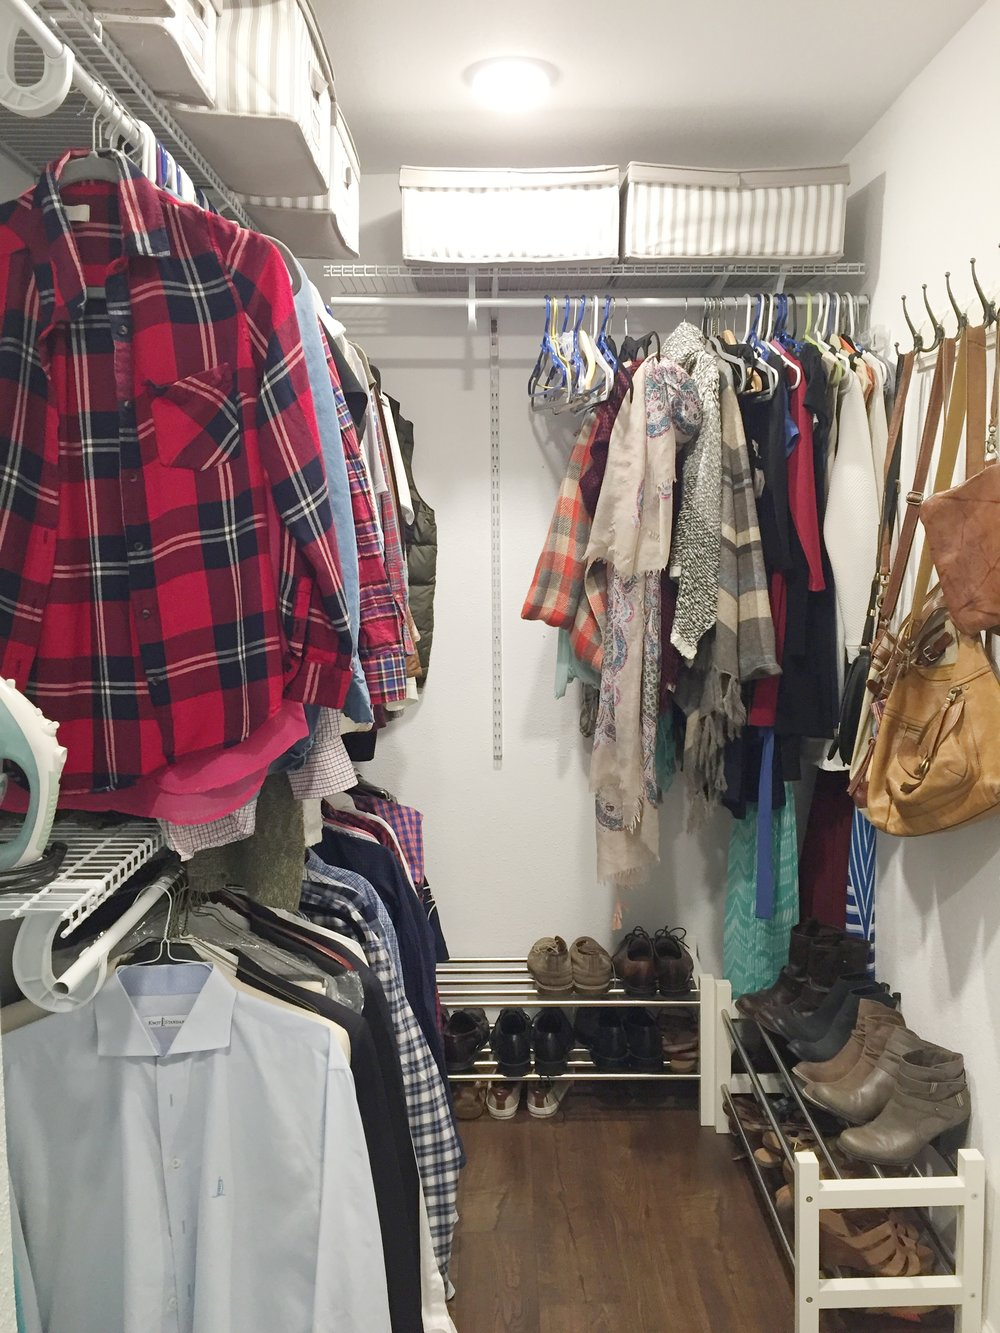 Closet organizers were purchased at Home Depot and the shoe racks and storage boxes above are from IKEA.